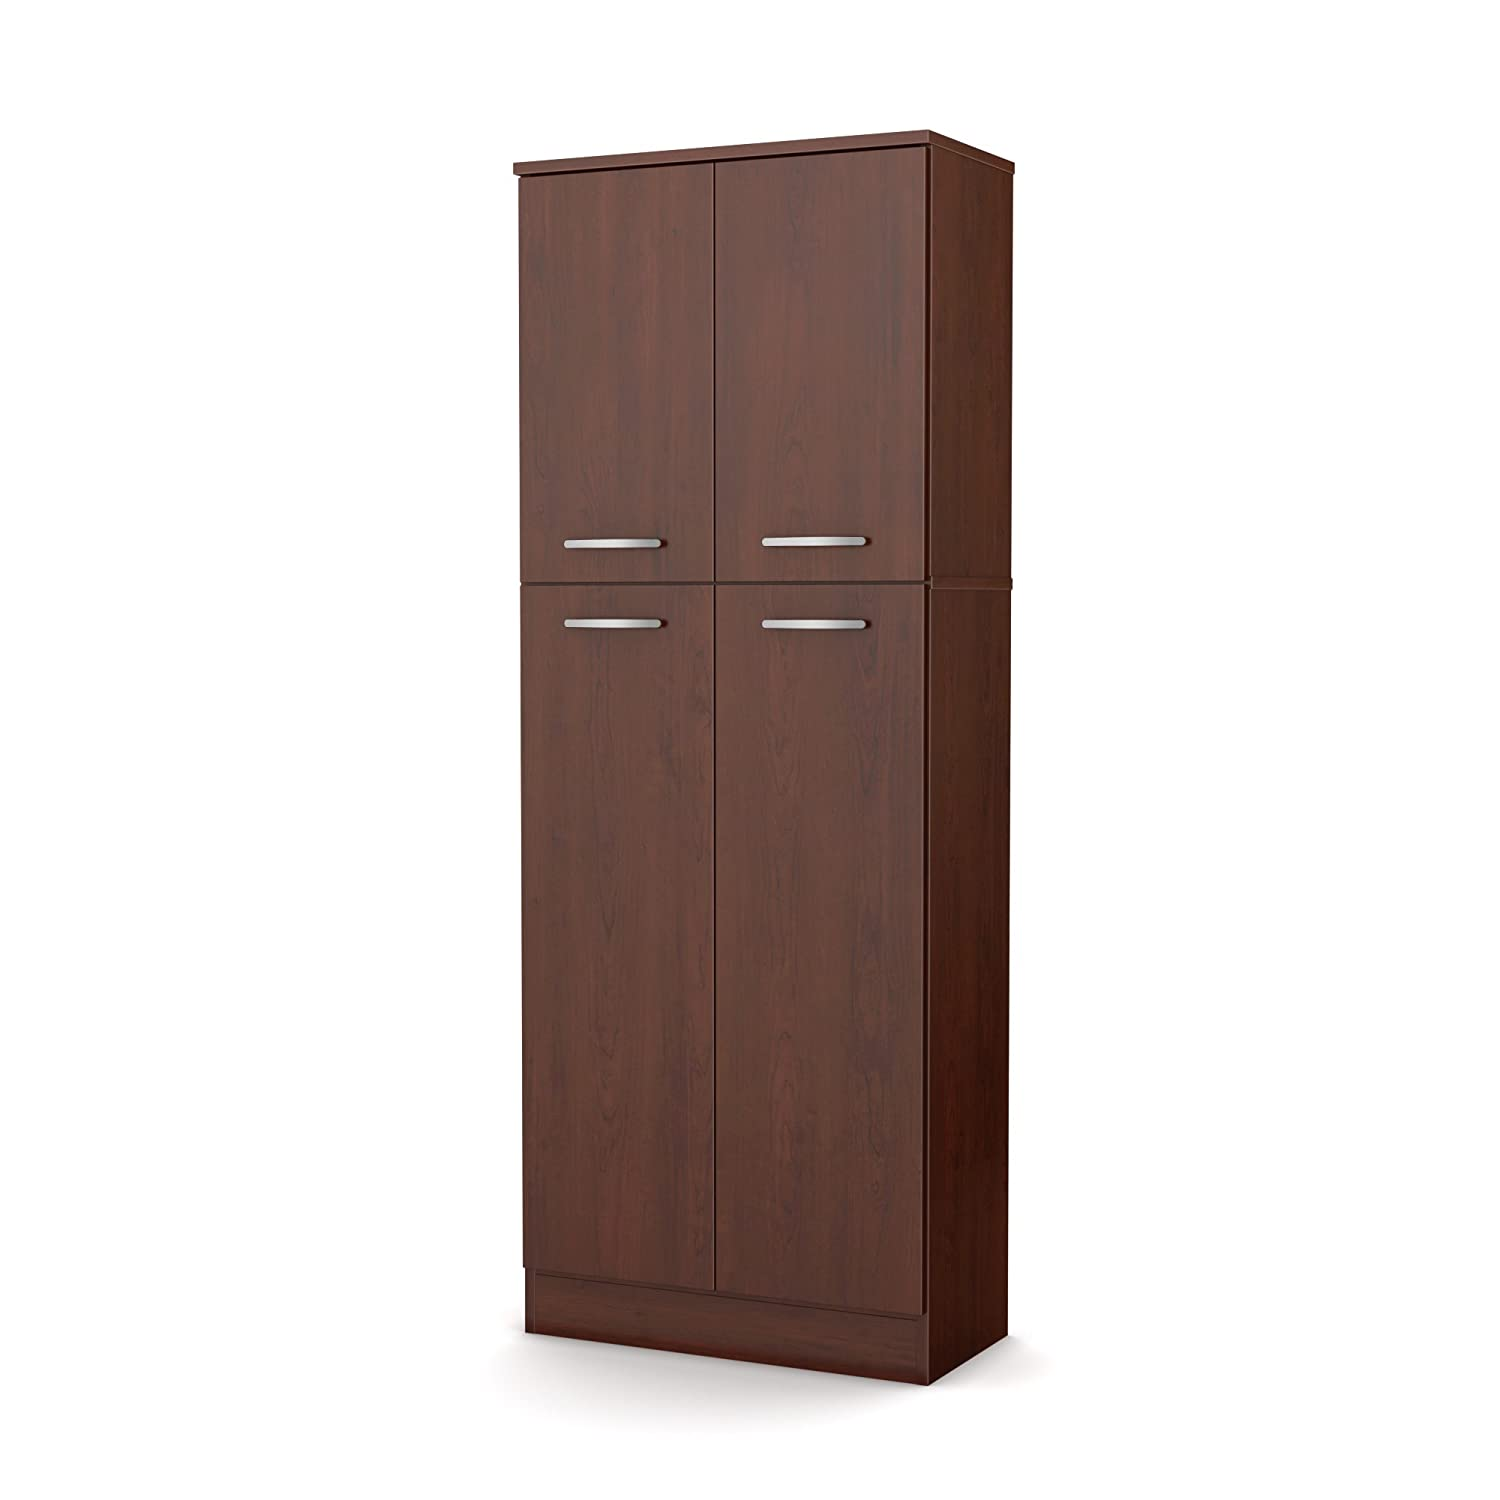 Kitchen Cabinet Pantry Cupboard Brown Organizer Food Storage Tall Shelves New Ebay